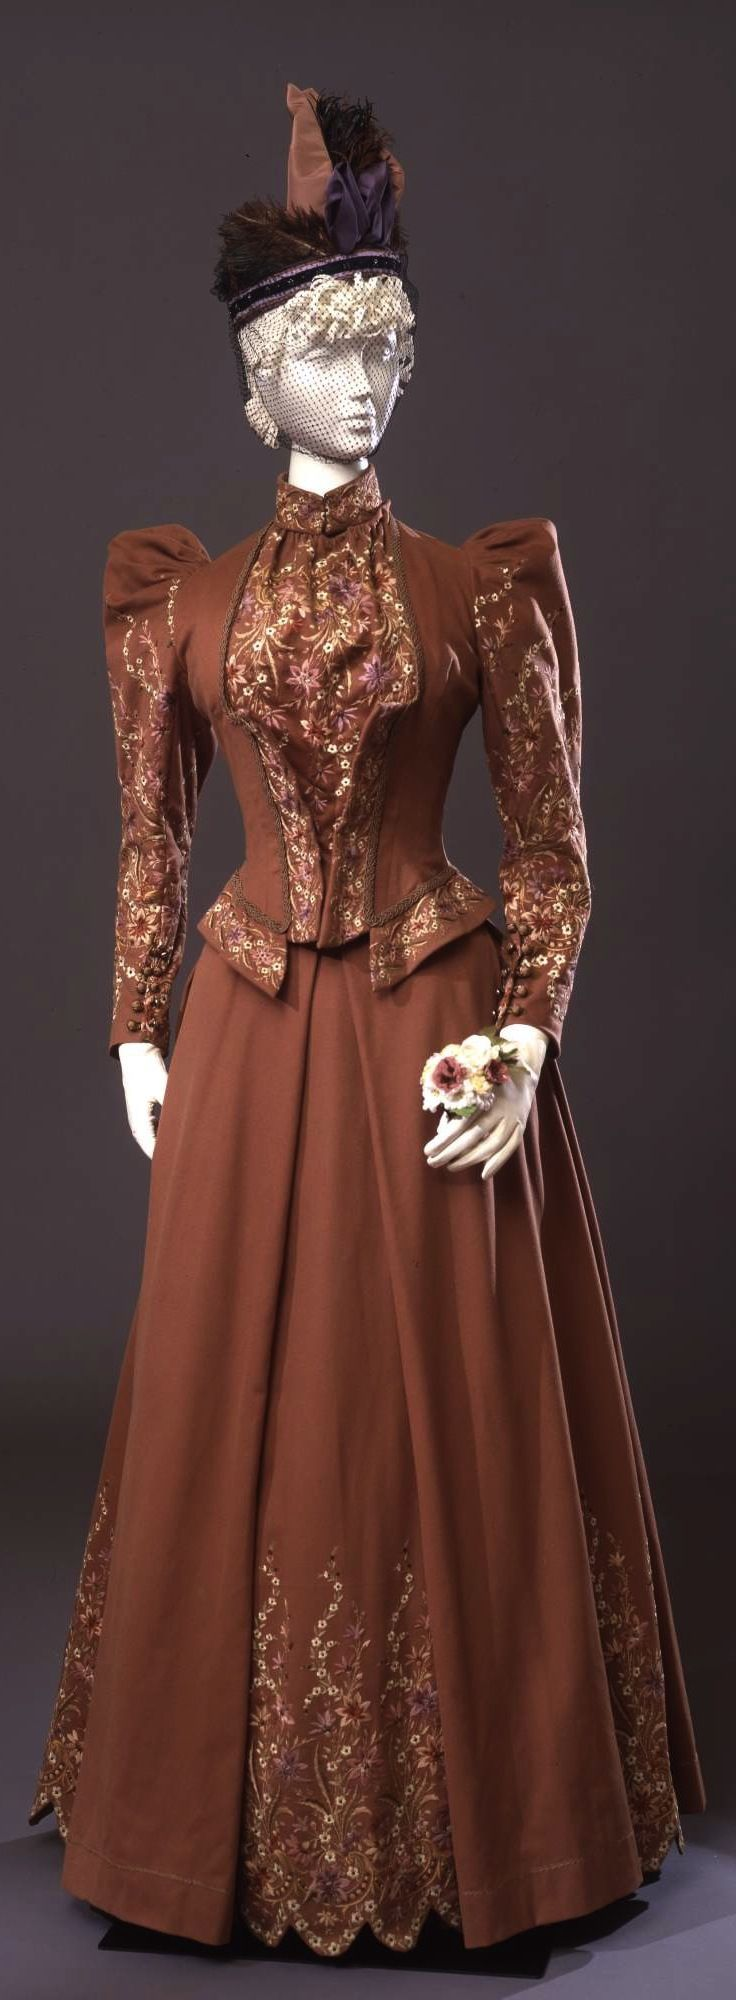 Walking dress in two parts (bodice and skirt), by Sartoria Giuseppa Giabbani Mode e Confezioni, Florence, c. 1891, at the Pitti Palace Costume Gallery. Via Europeana Fashion.